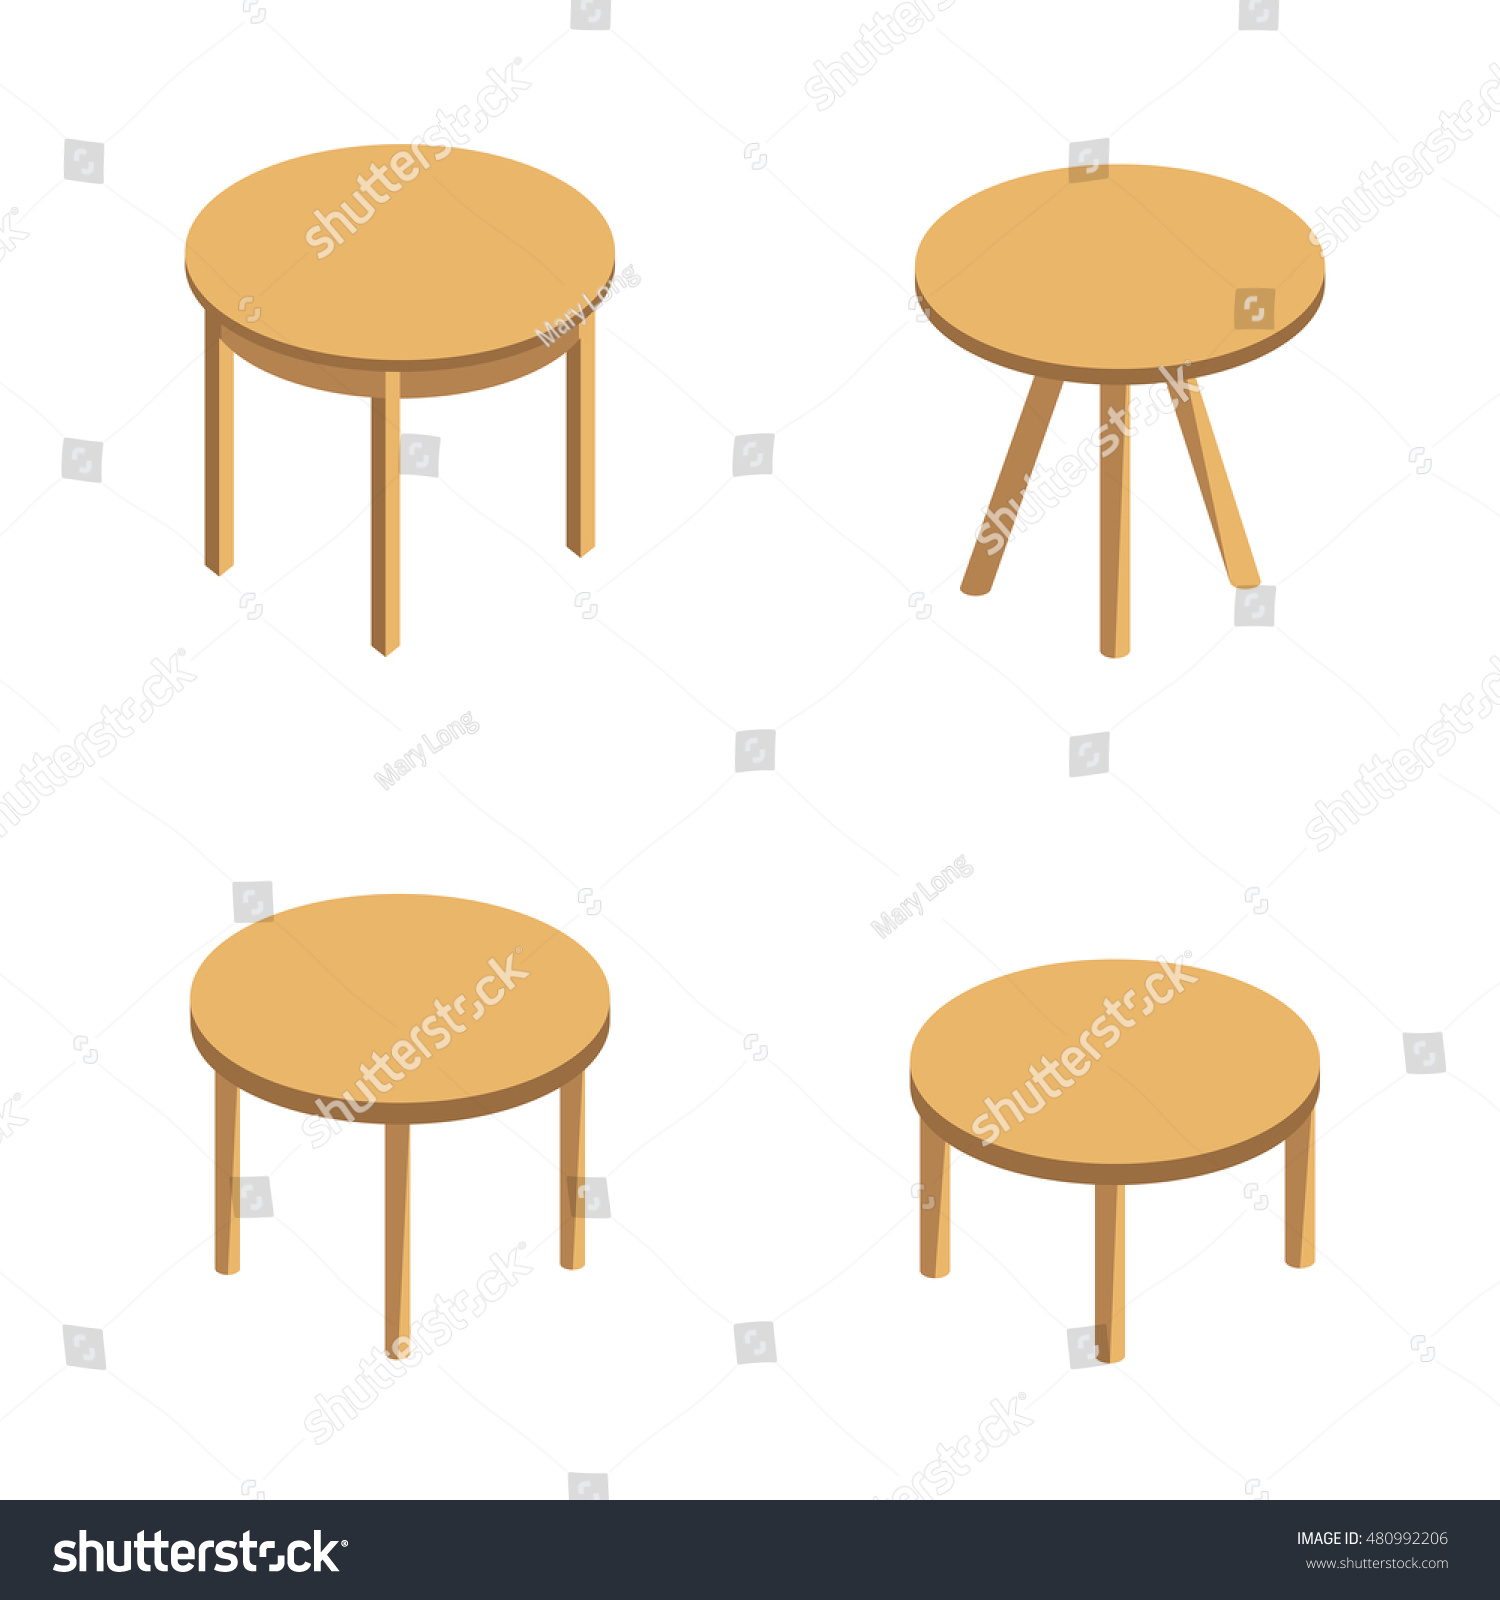 Isometric vector set round tables round stock vector 480992206 isometric vector set of round tables round coffee table small table with three legs geotapseo Images